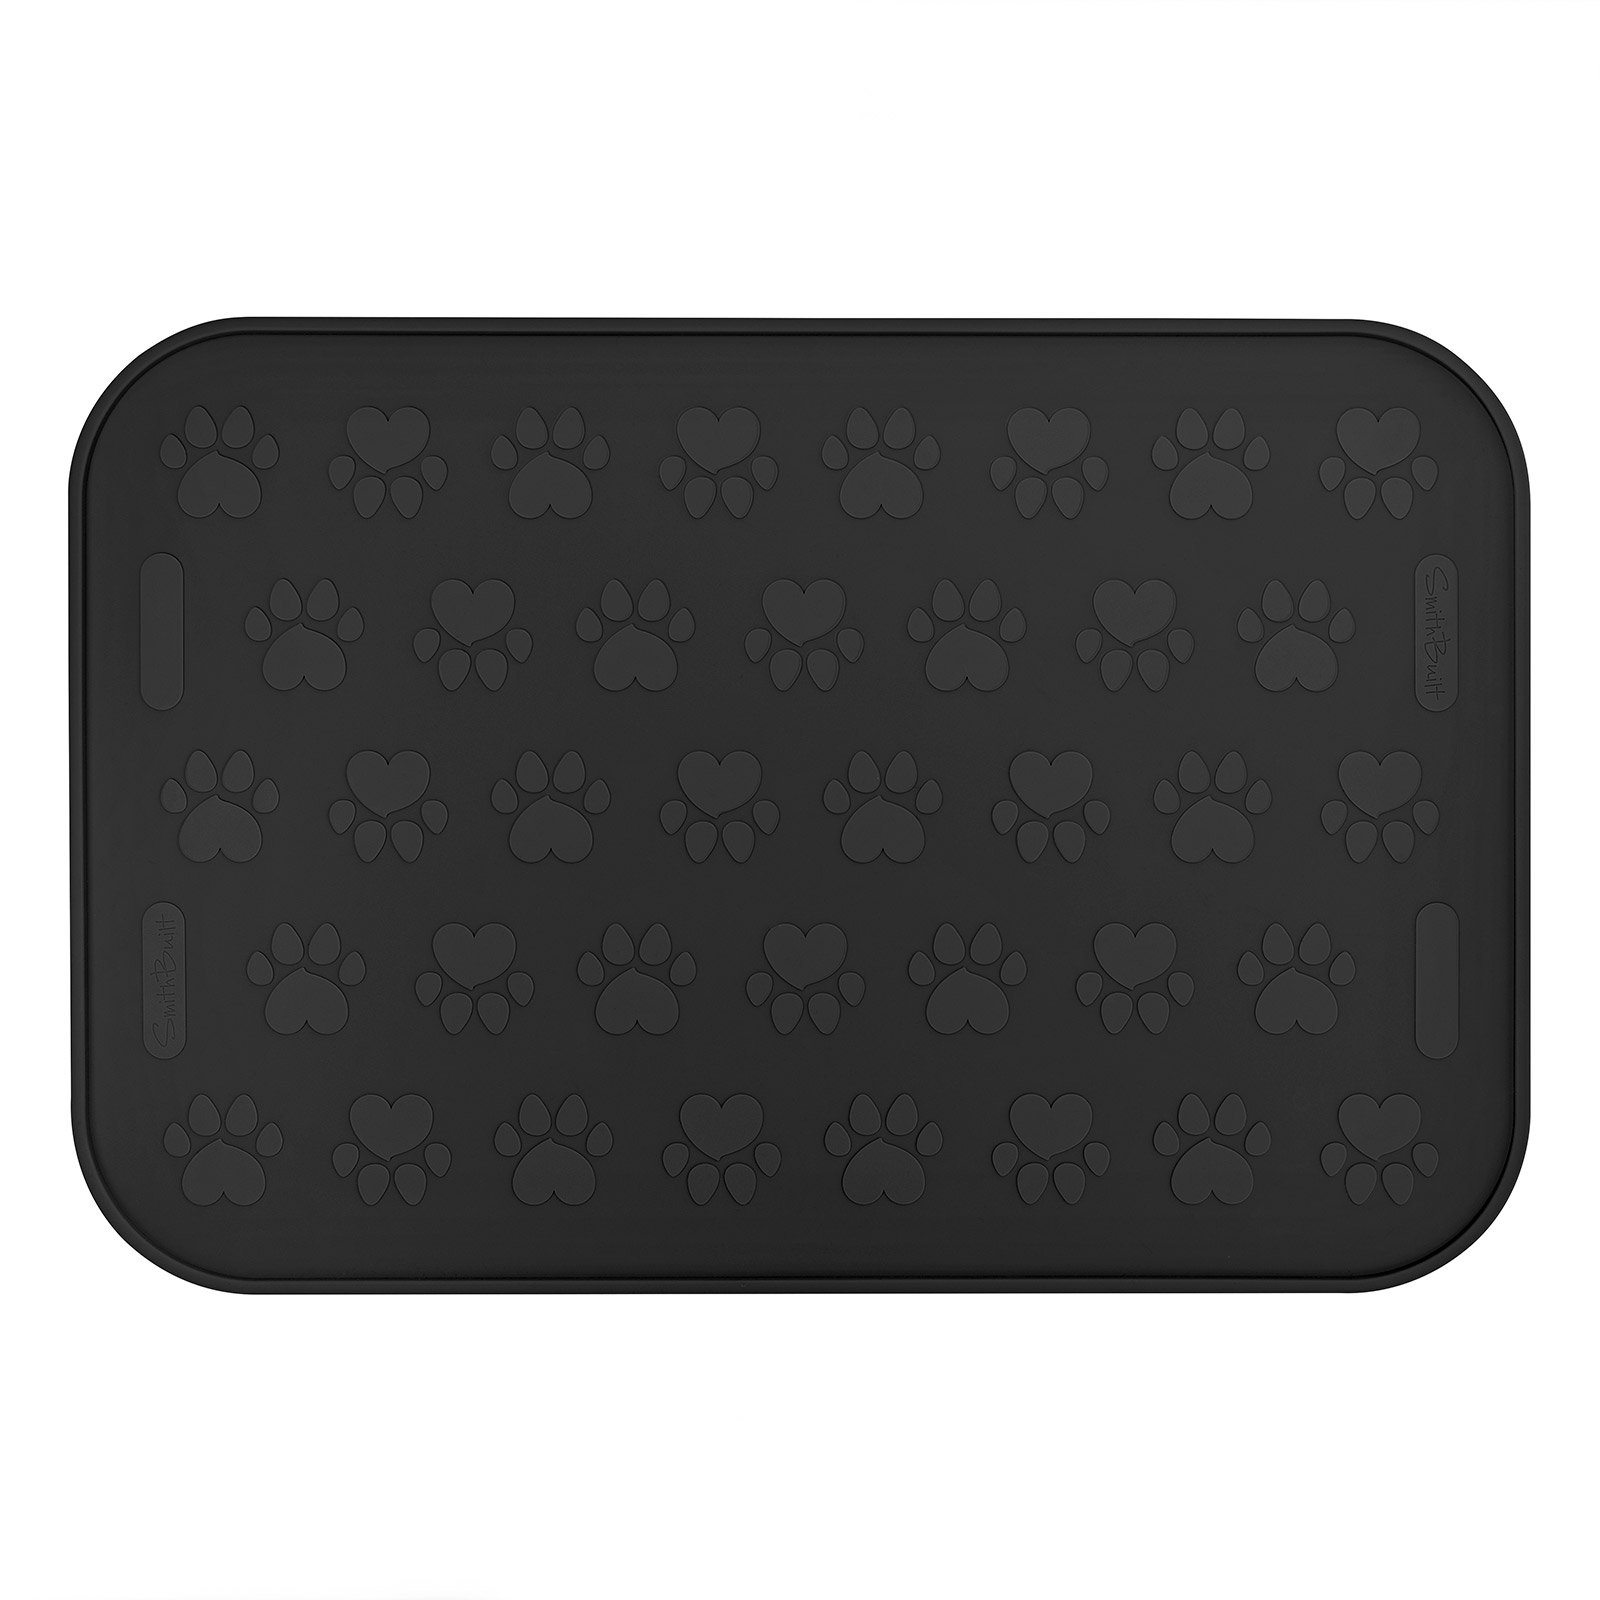 SmithBuilt 24'' x 16'' Large Dog Food Mat - Waterproof Non-Slip FDA-Grade Silicone Cat Pet Bowl Feeding Placemat - Black by SmithBuilt (Image #3)